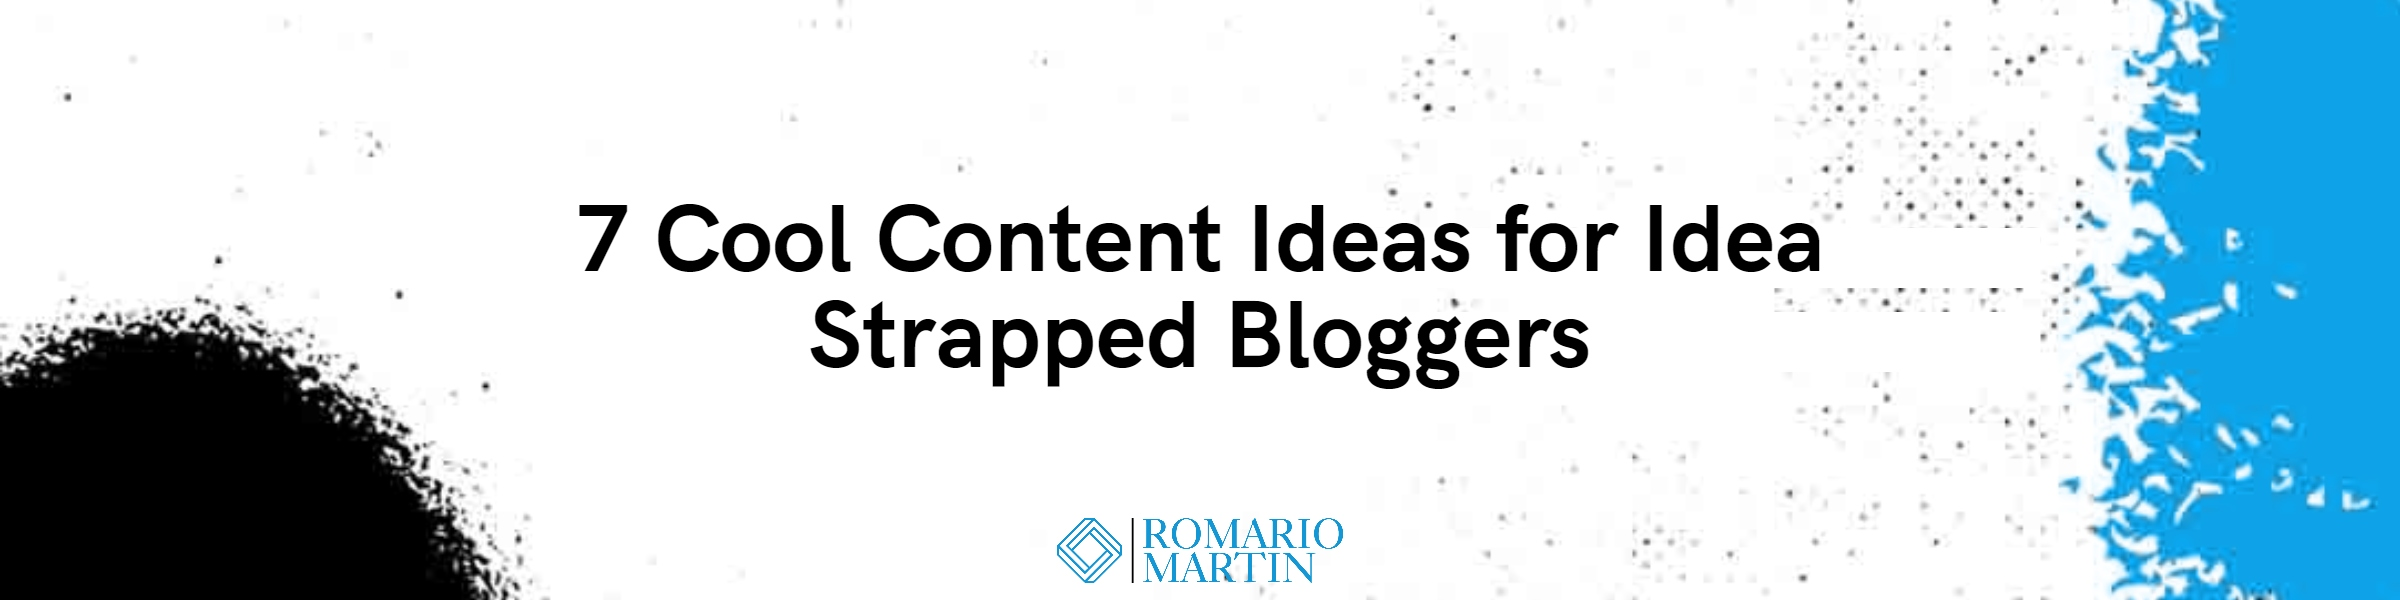 7 Cool Content Ideas for Idea Strapped Bloggers